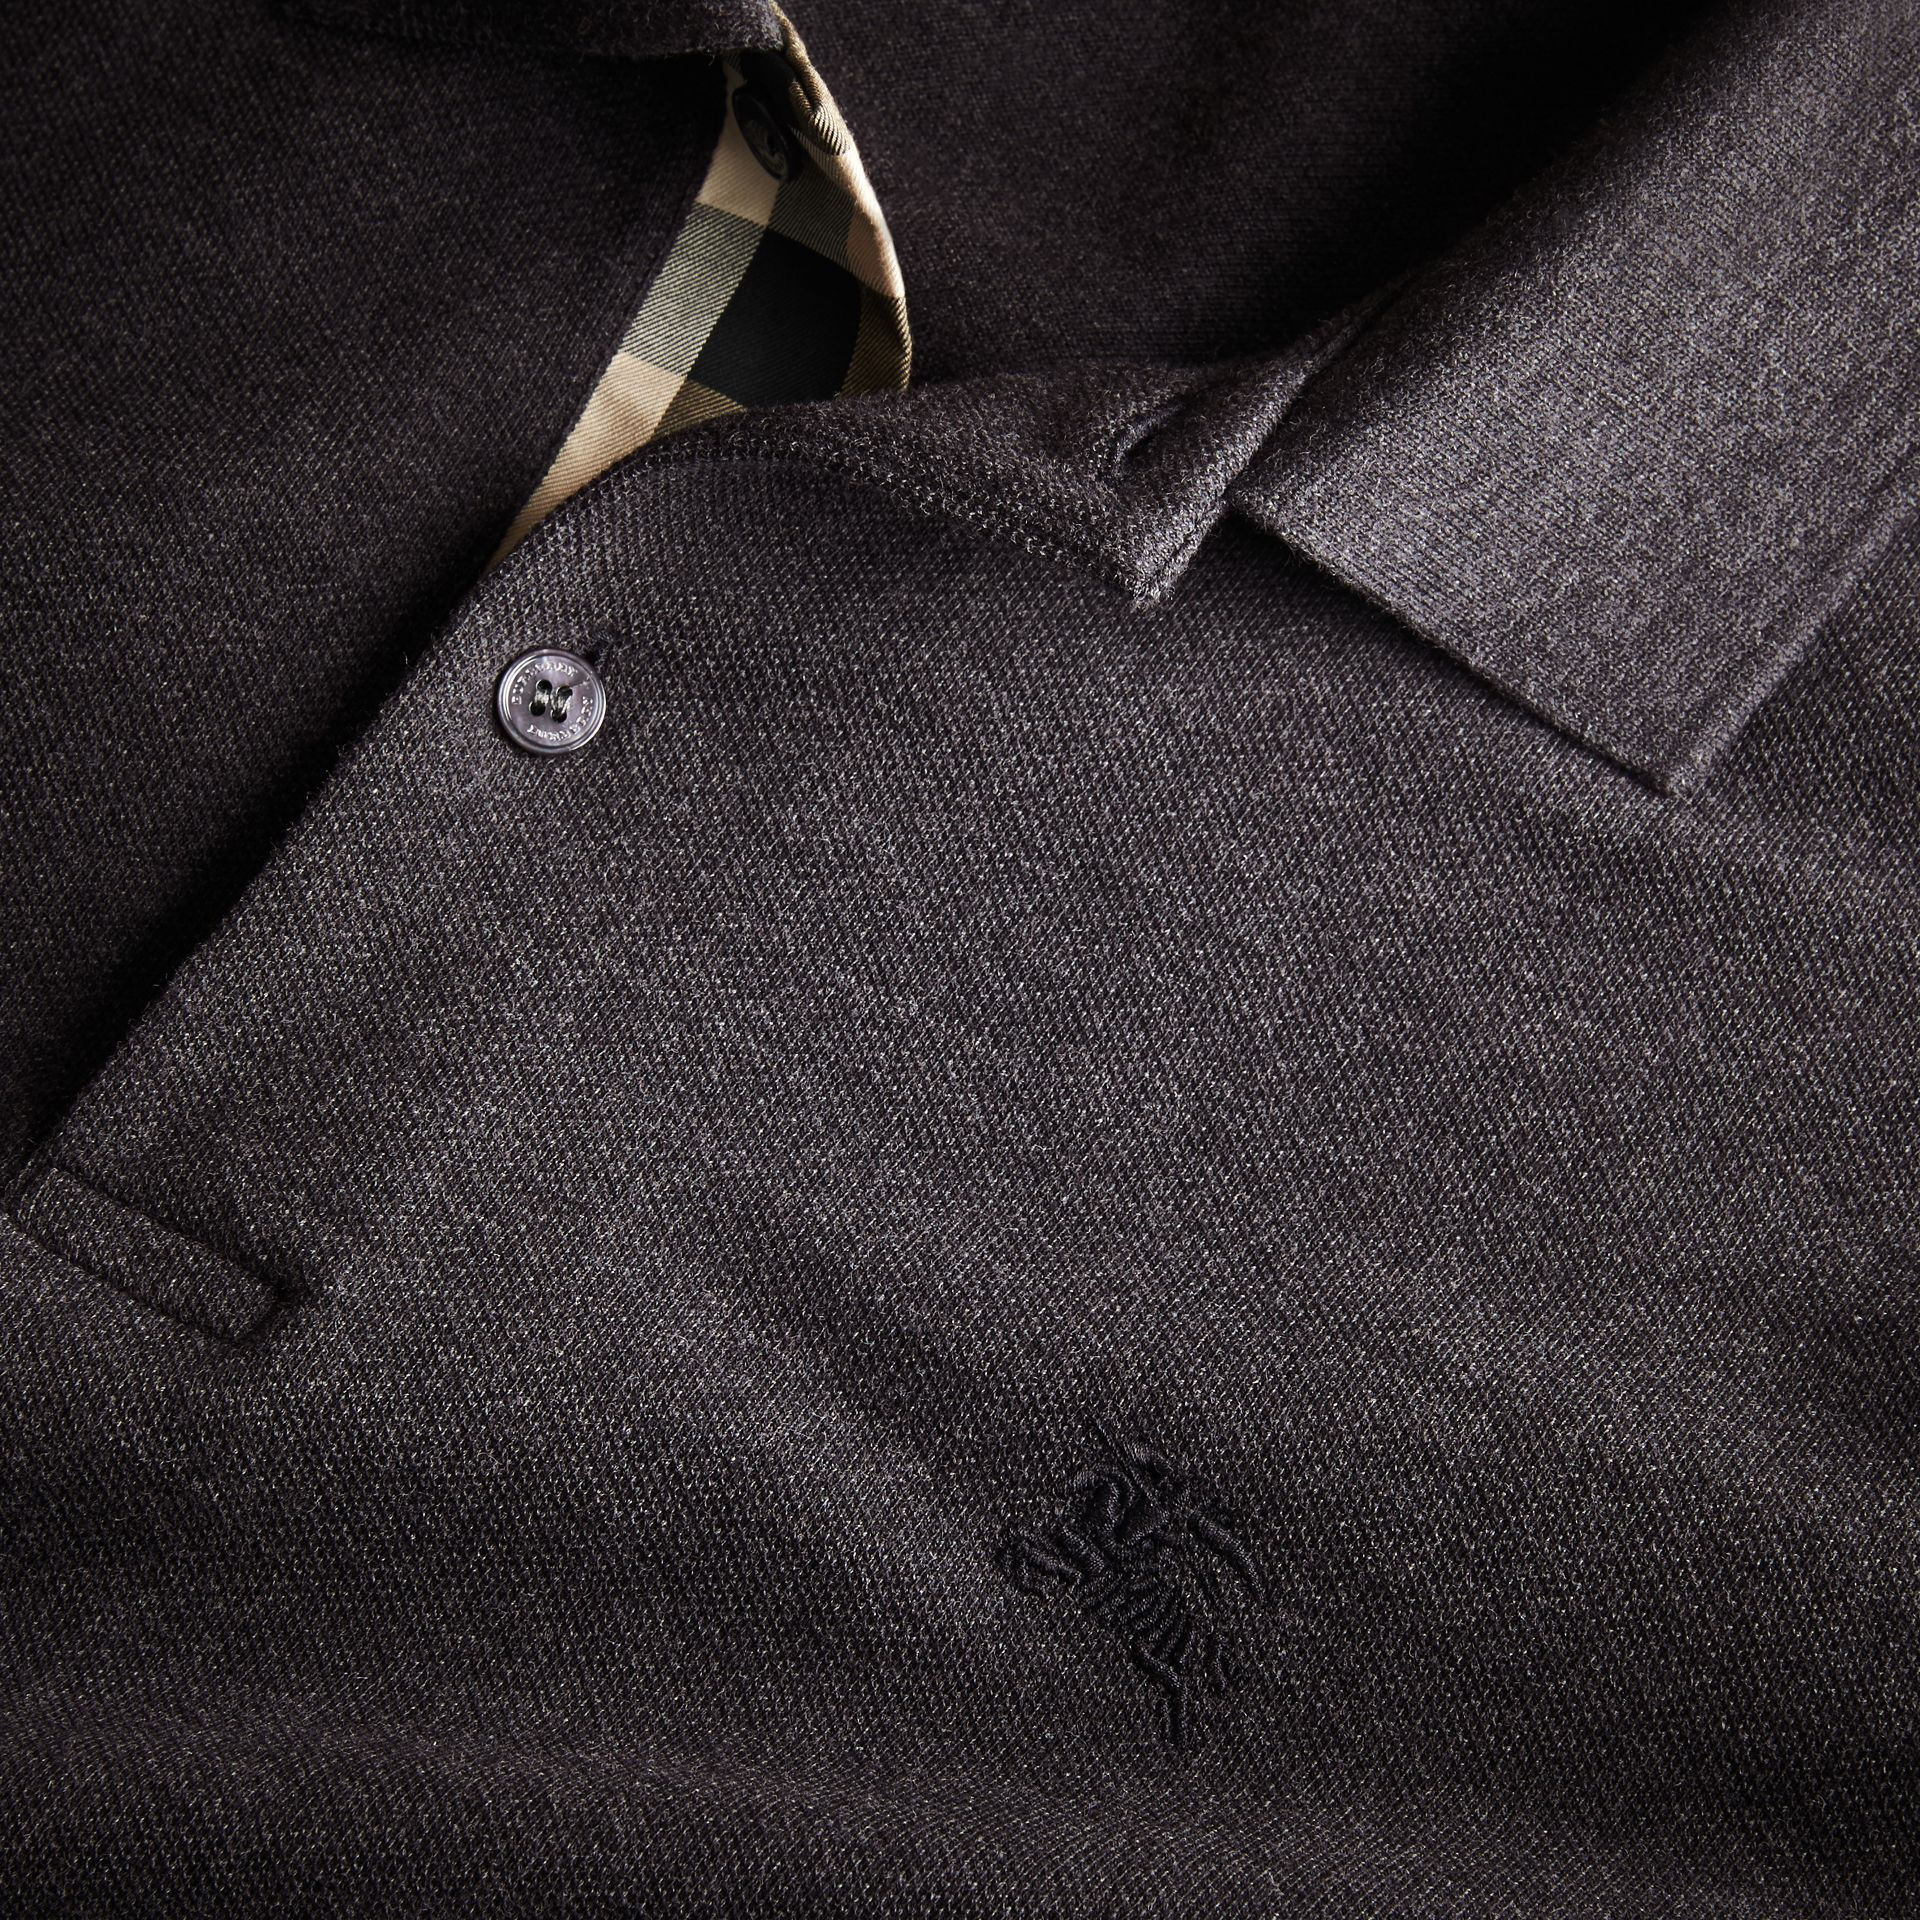 Check Placket Long Sleeve Polo Shirt in Dark Charcoal Melange - gallery image 2